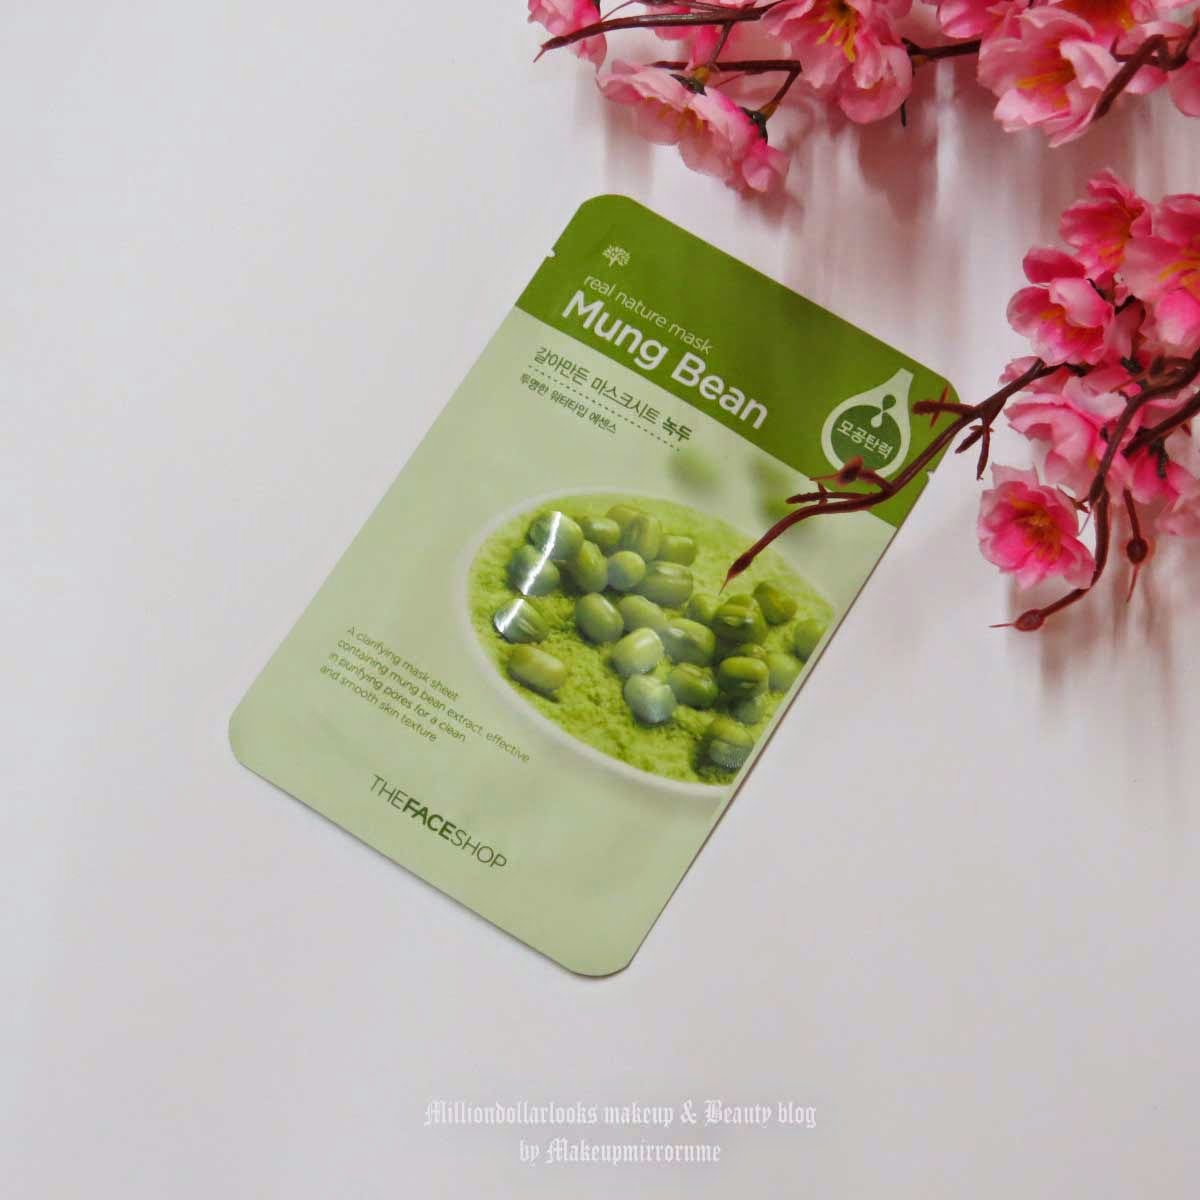 The Face Shop Real Nature Mask Mung Bean Review, Pictures & Price in India, Where to buy face mask sheets in India, best face mask sheets available in India, Indian beauty blogger, Indian makeup and beauty blog, Indian skincare blog, Best face masks for dry skin, The Face shop review india, The face shop products, The face shop face masks review, skincare, facemask sheets review